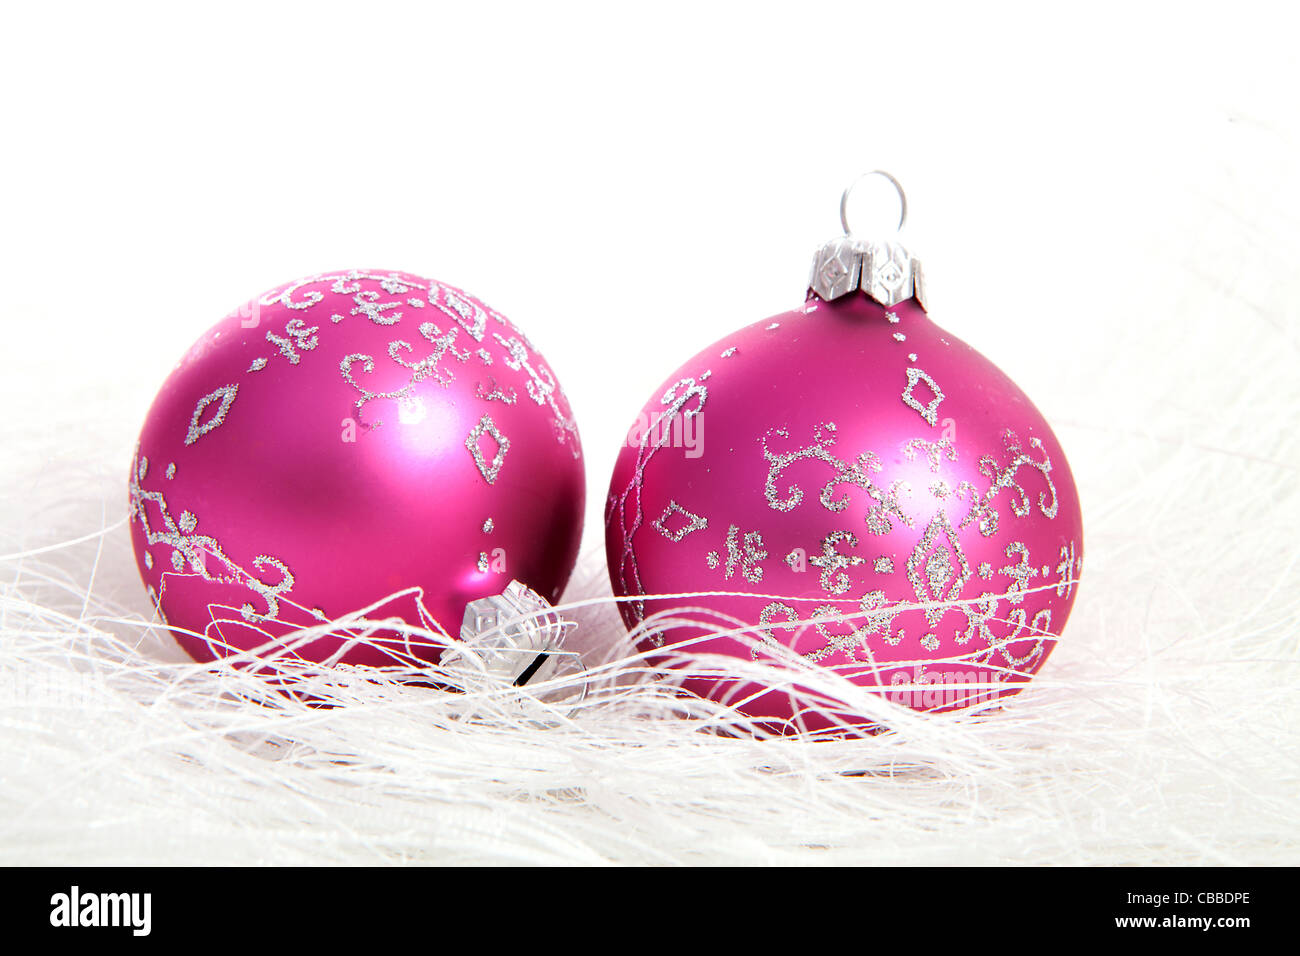 Two pink christmas balls with silver glitters over white background Stock Photo